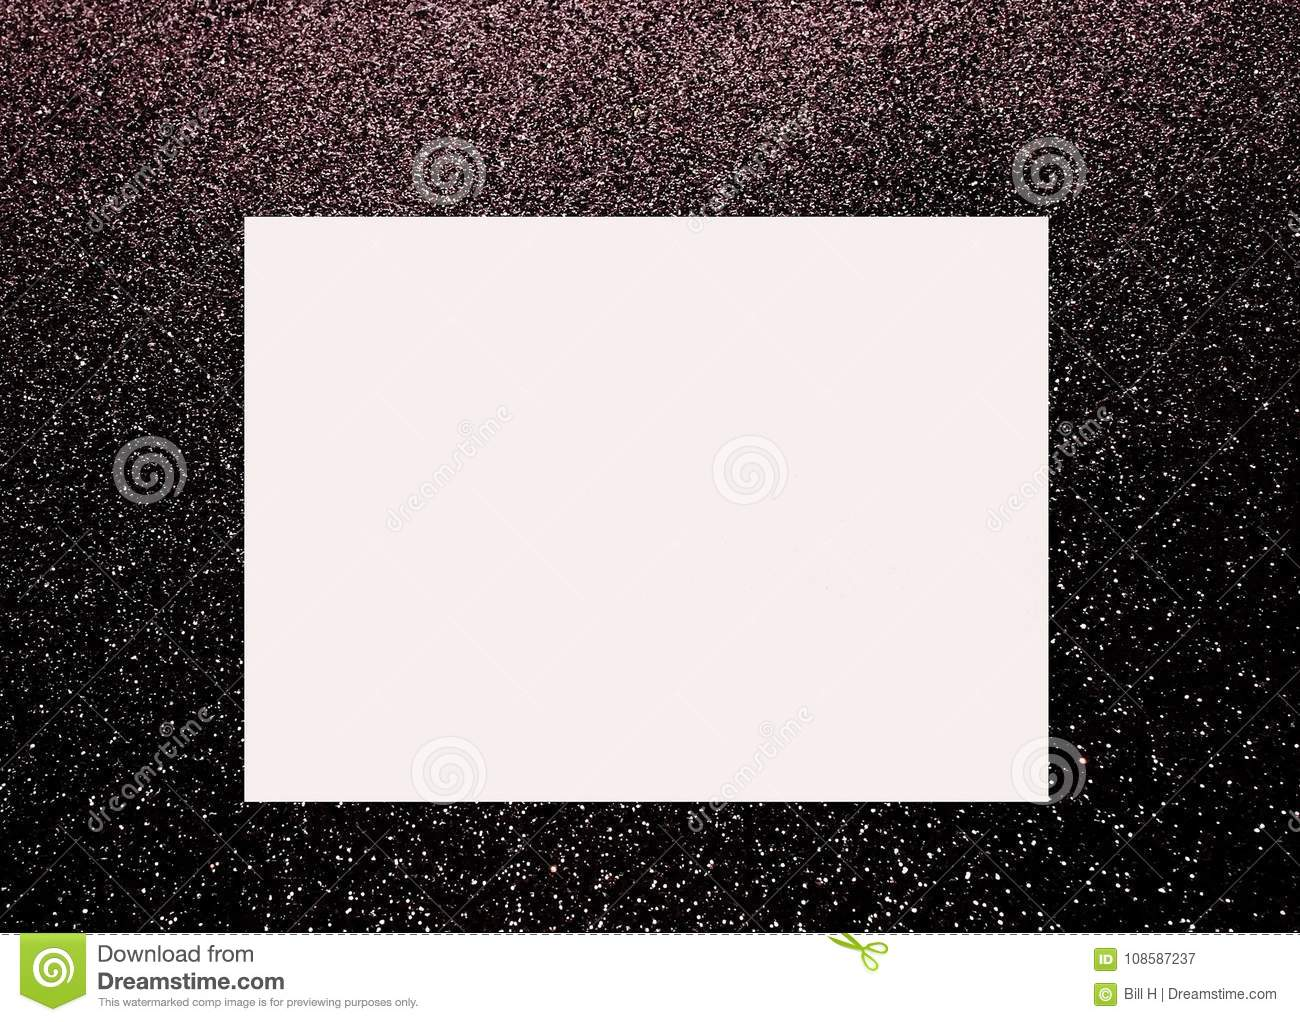 A Large Blank Box On A Black And White Bacground Stock Image - Image